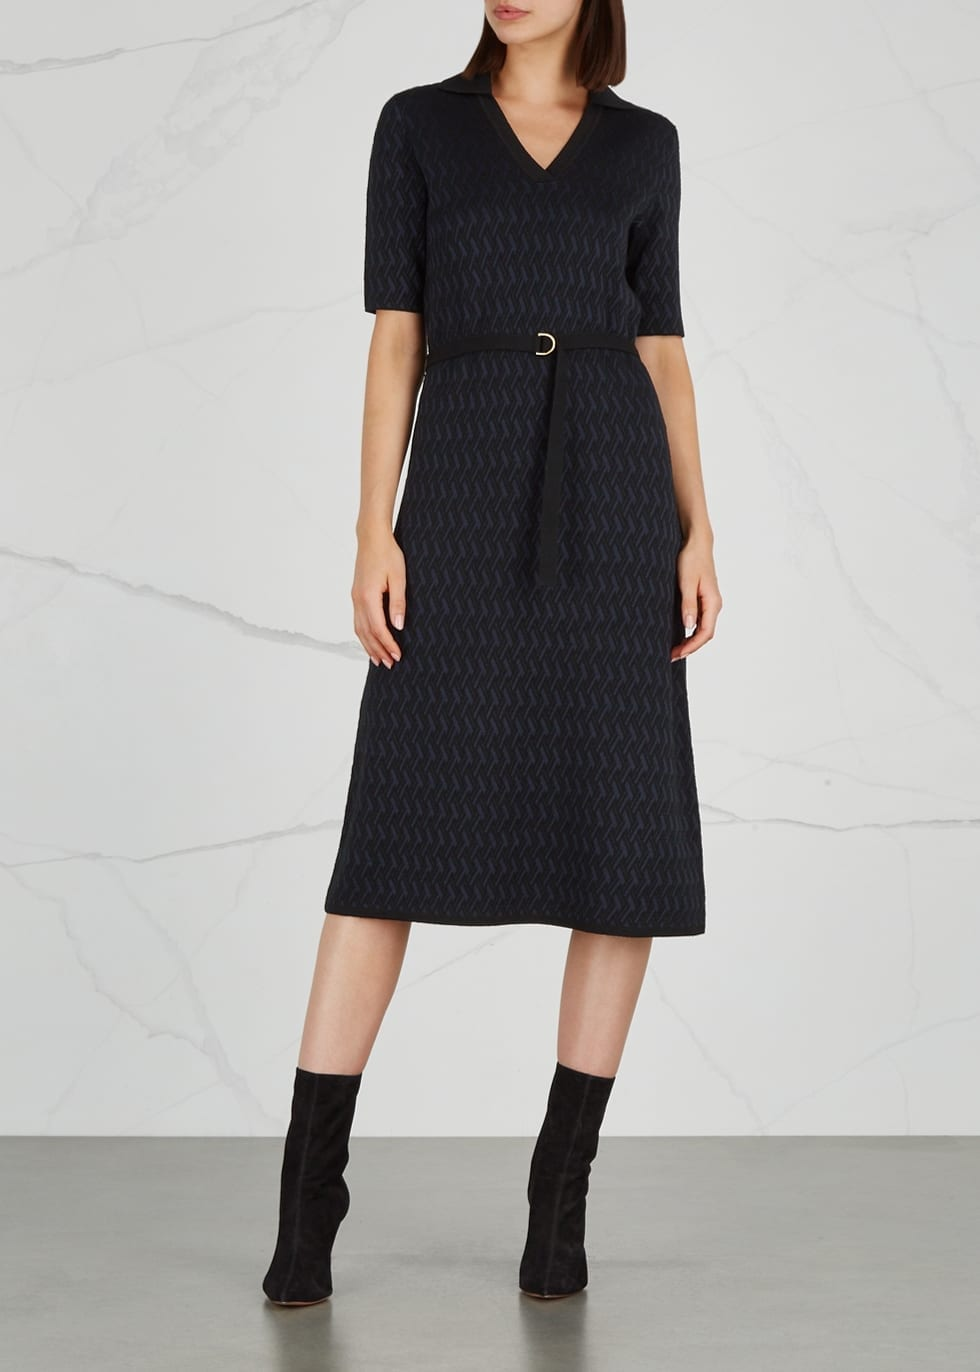 TORY BURCH Dara Jacquard Knit Navy Dress